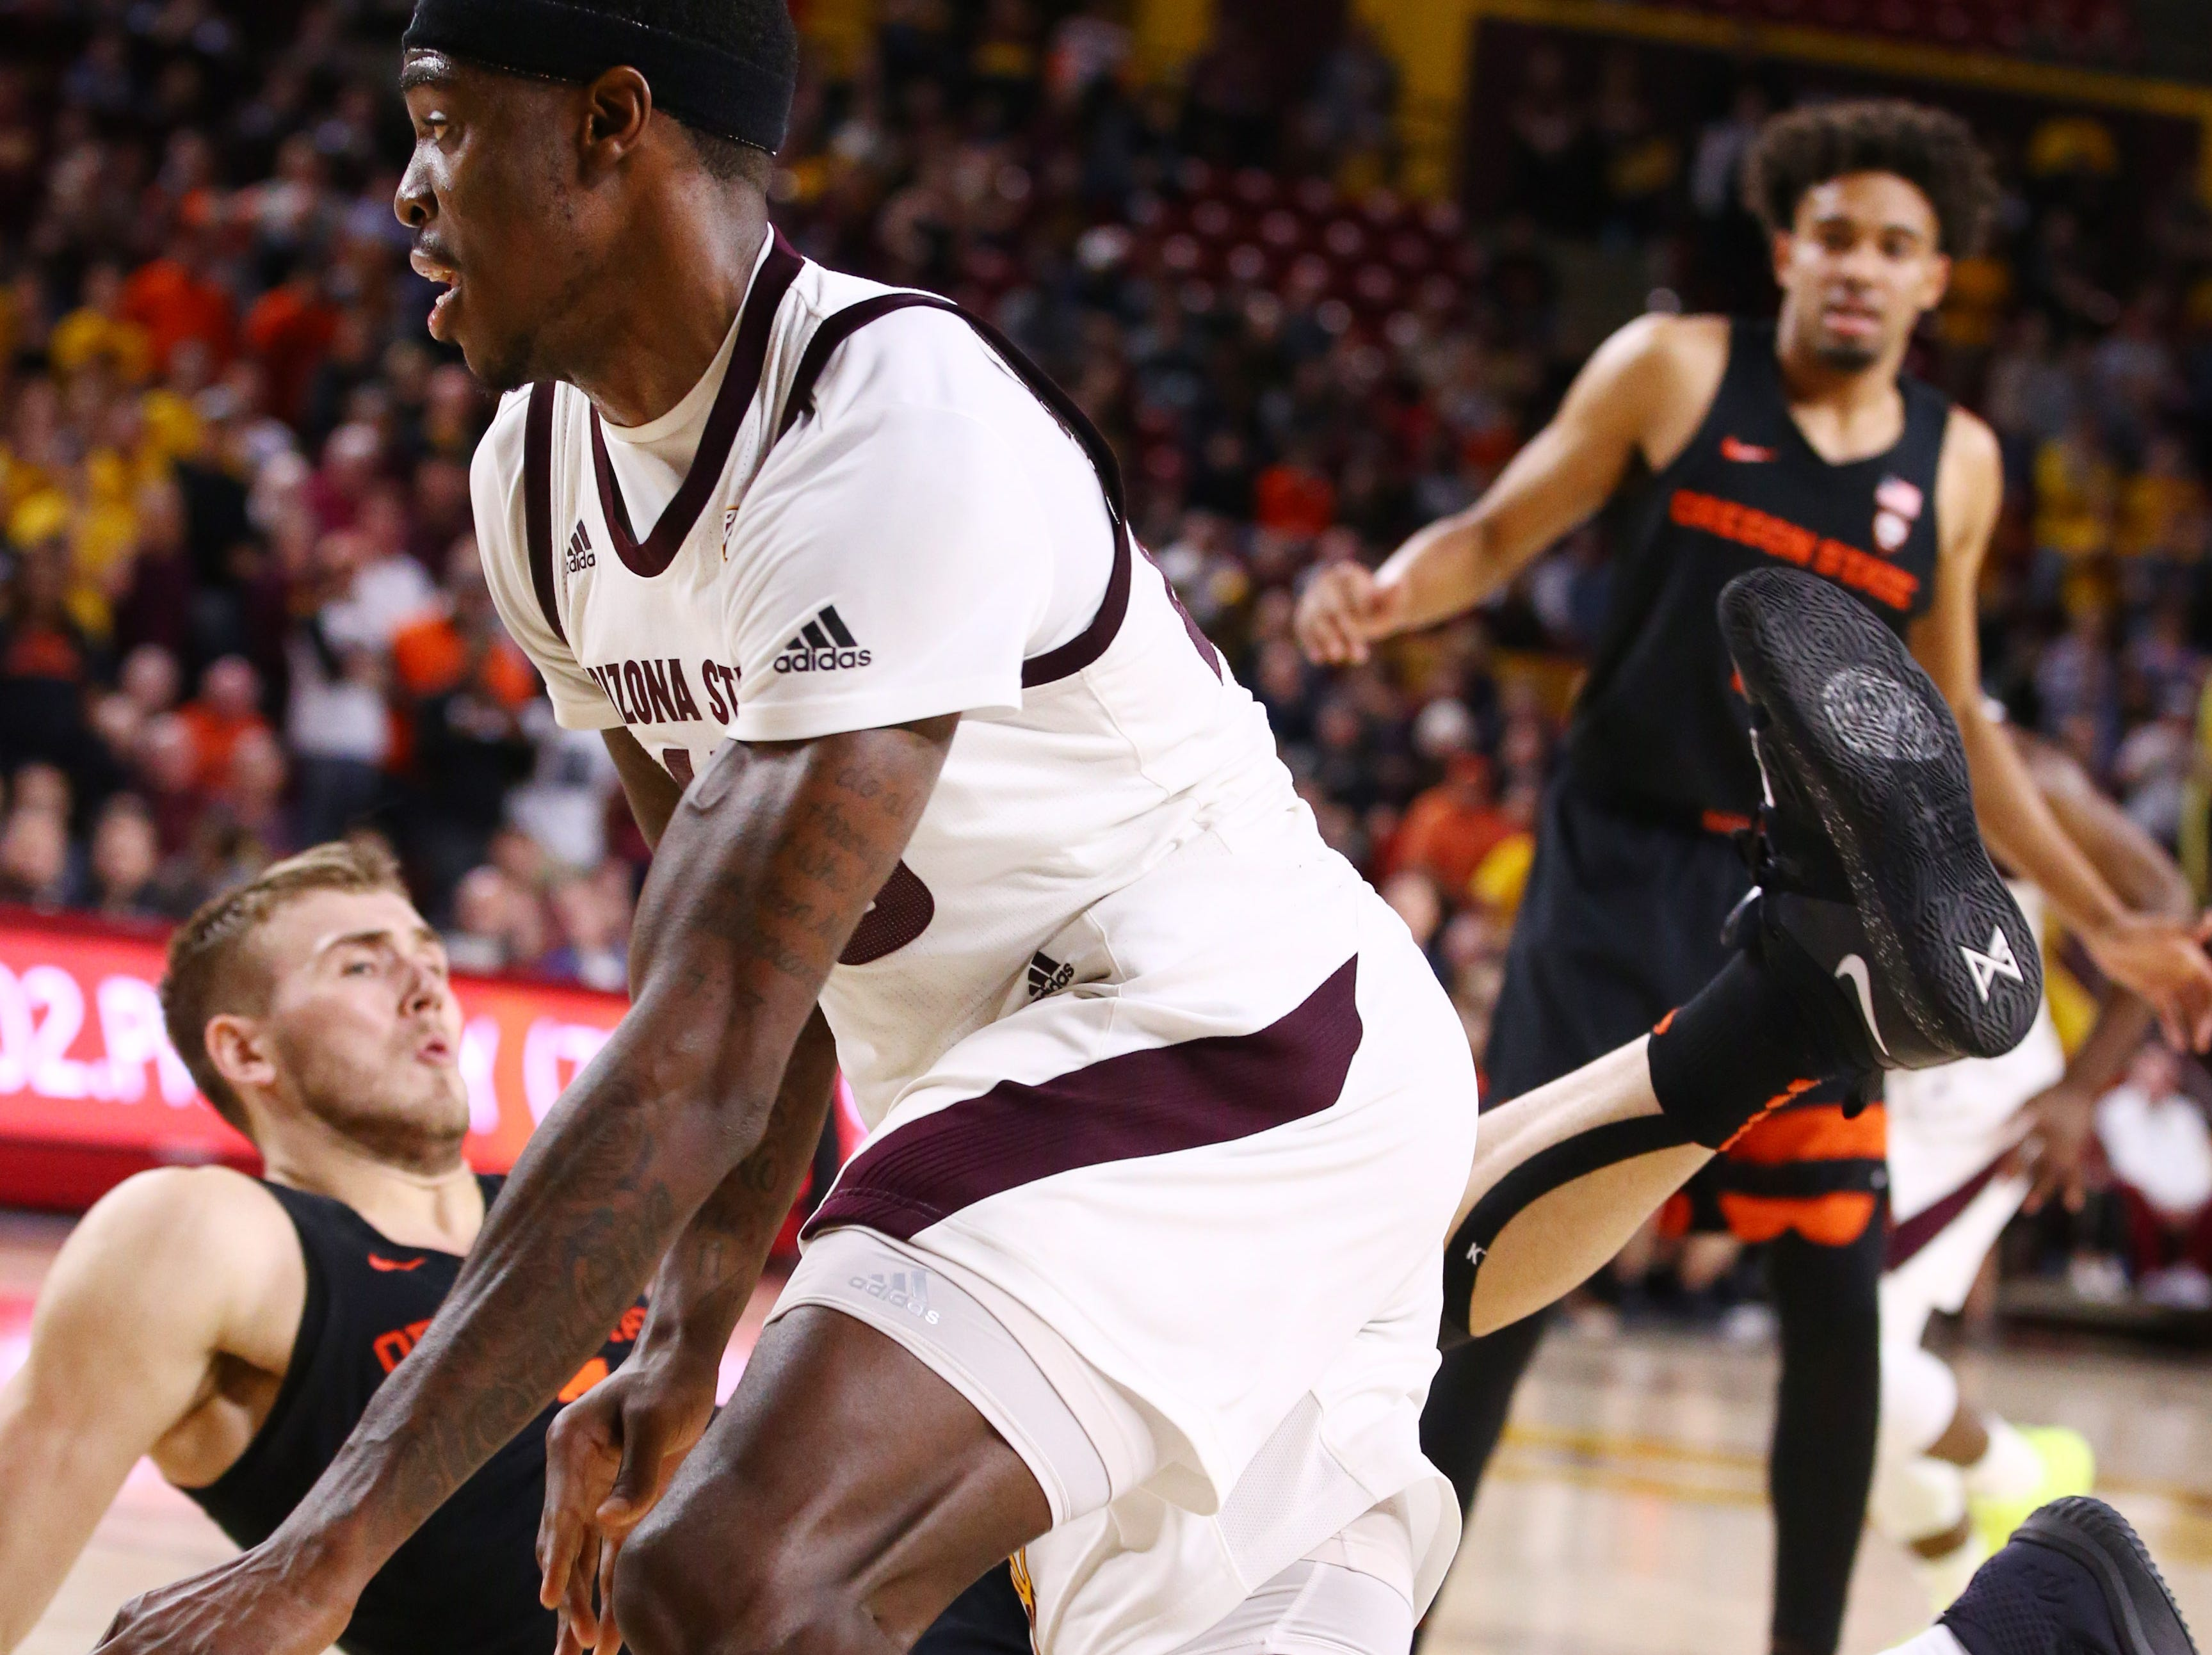 Arizona State Sun Devils forward Zylan Cheatham drives to the basket against the Oregon State Beavers in the second half on Jan. 17 at Wells Fargo Arena in Tempe.